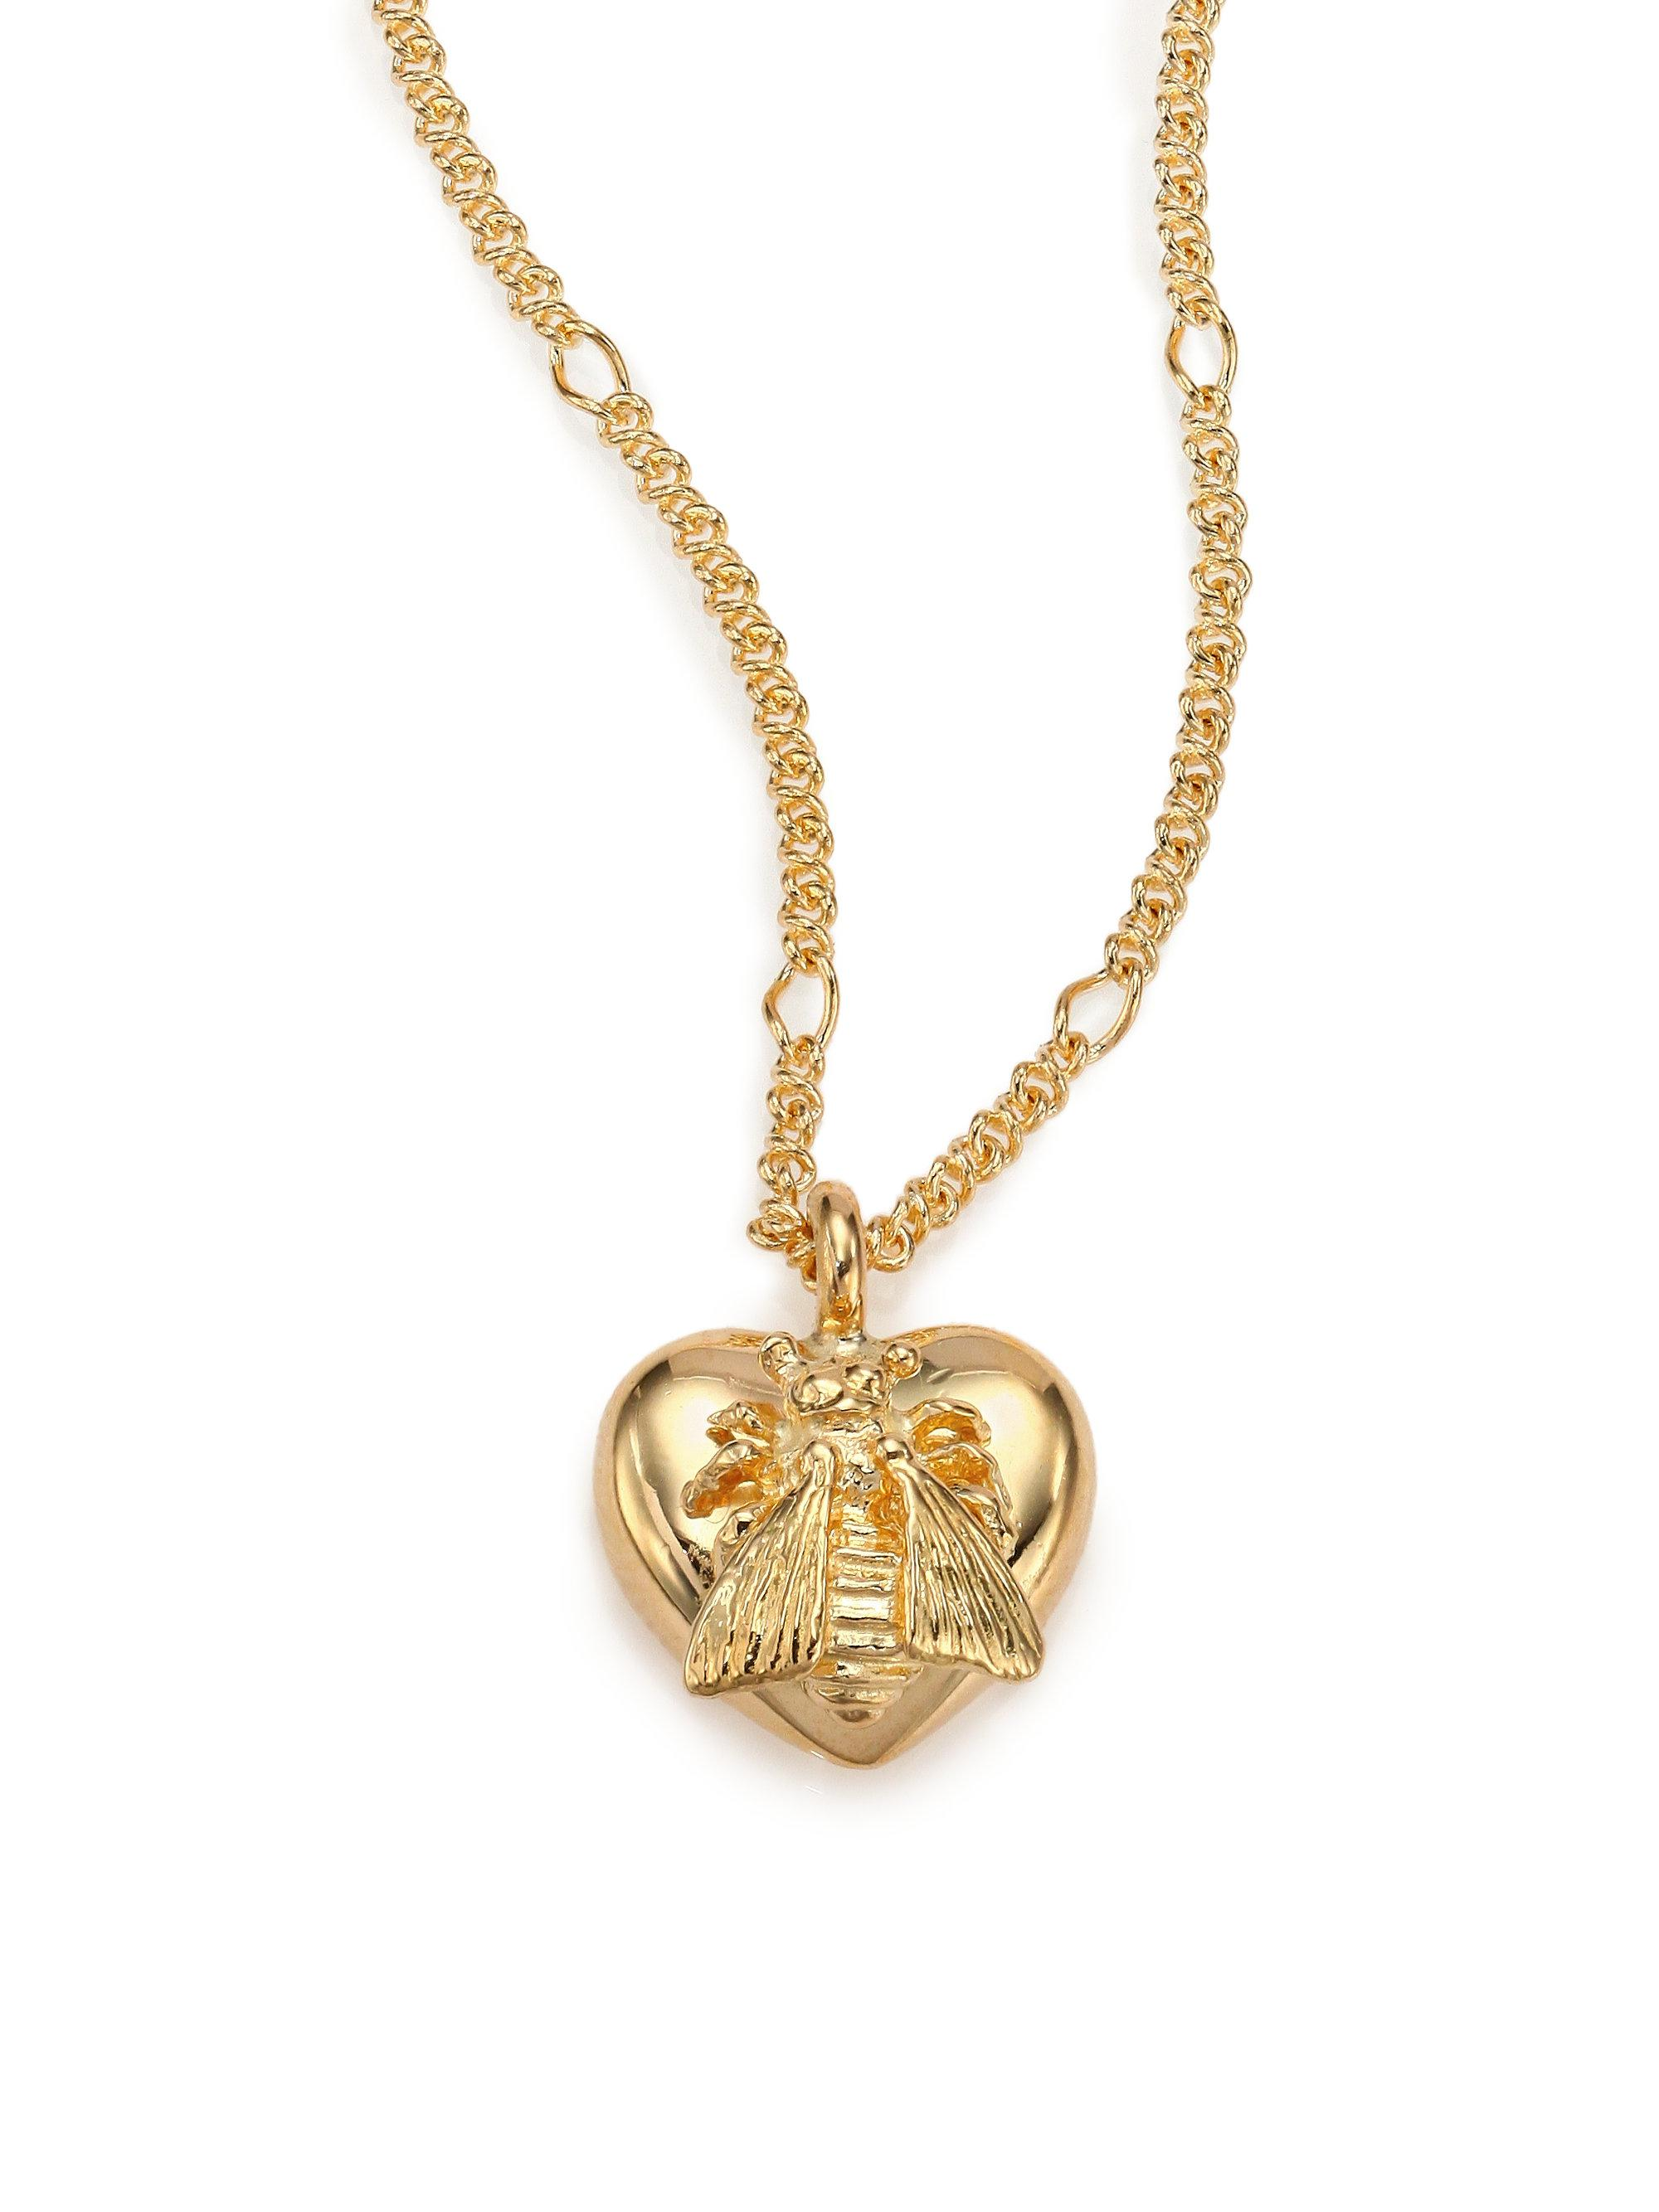 Lyst gucci 18k yellow gold bee heart pendant necklace in metallic gallery aloadofball Image collections